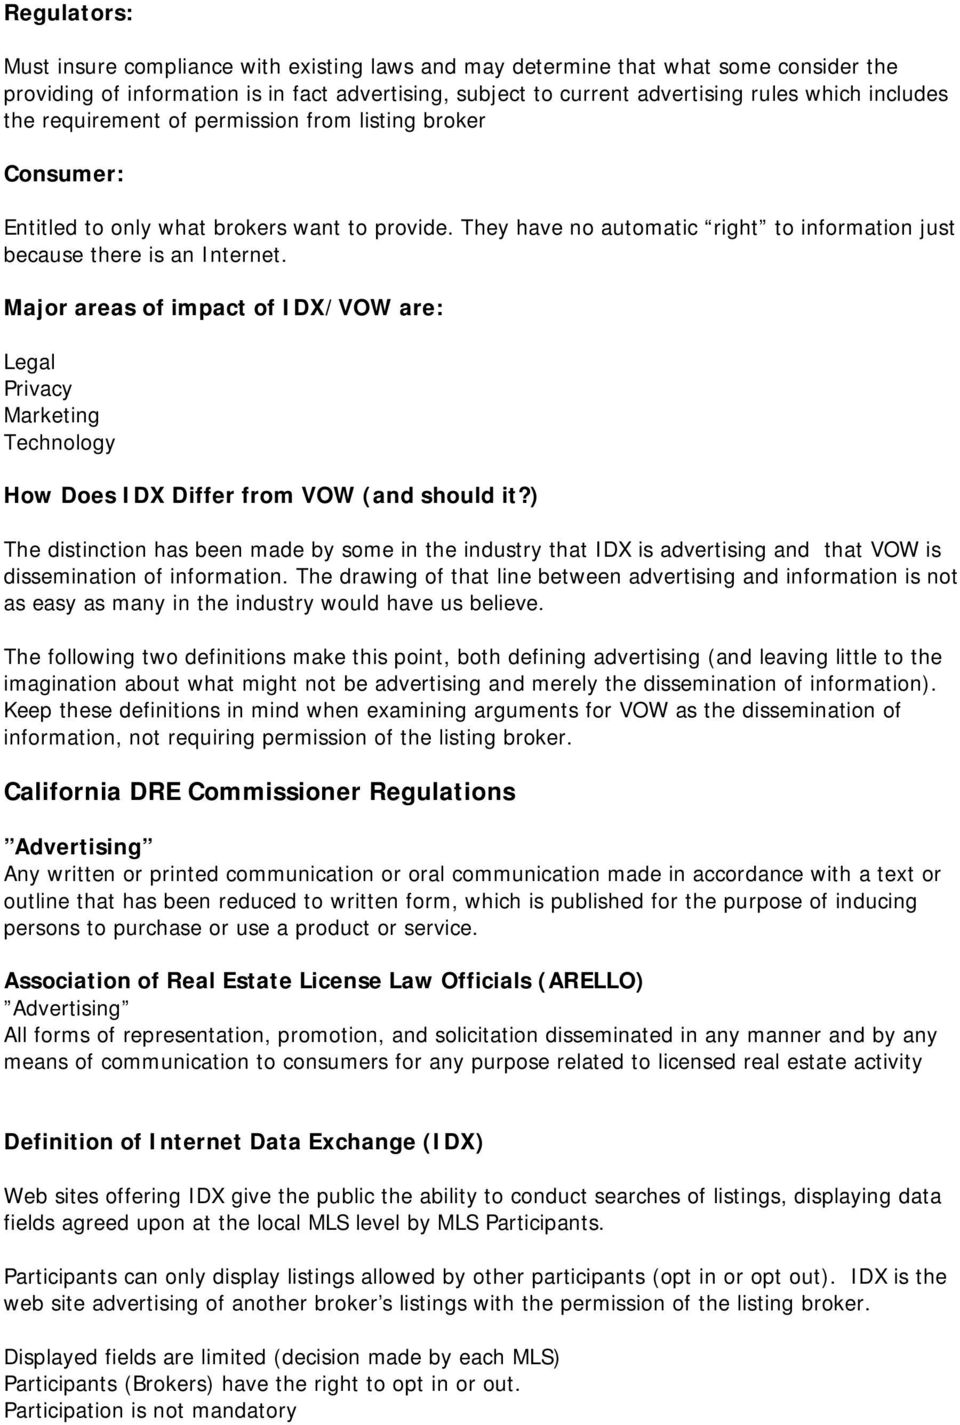 Major areas of impact of IDX/VOW are: Legal Privacy Marketing Technology How Does IDX Differ from VOW (and should it?